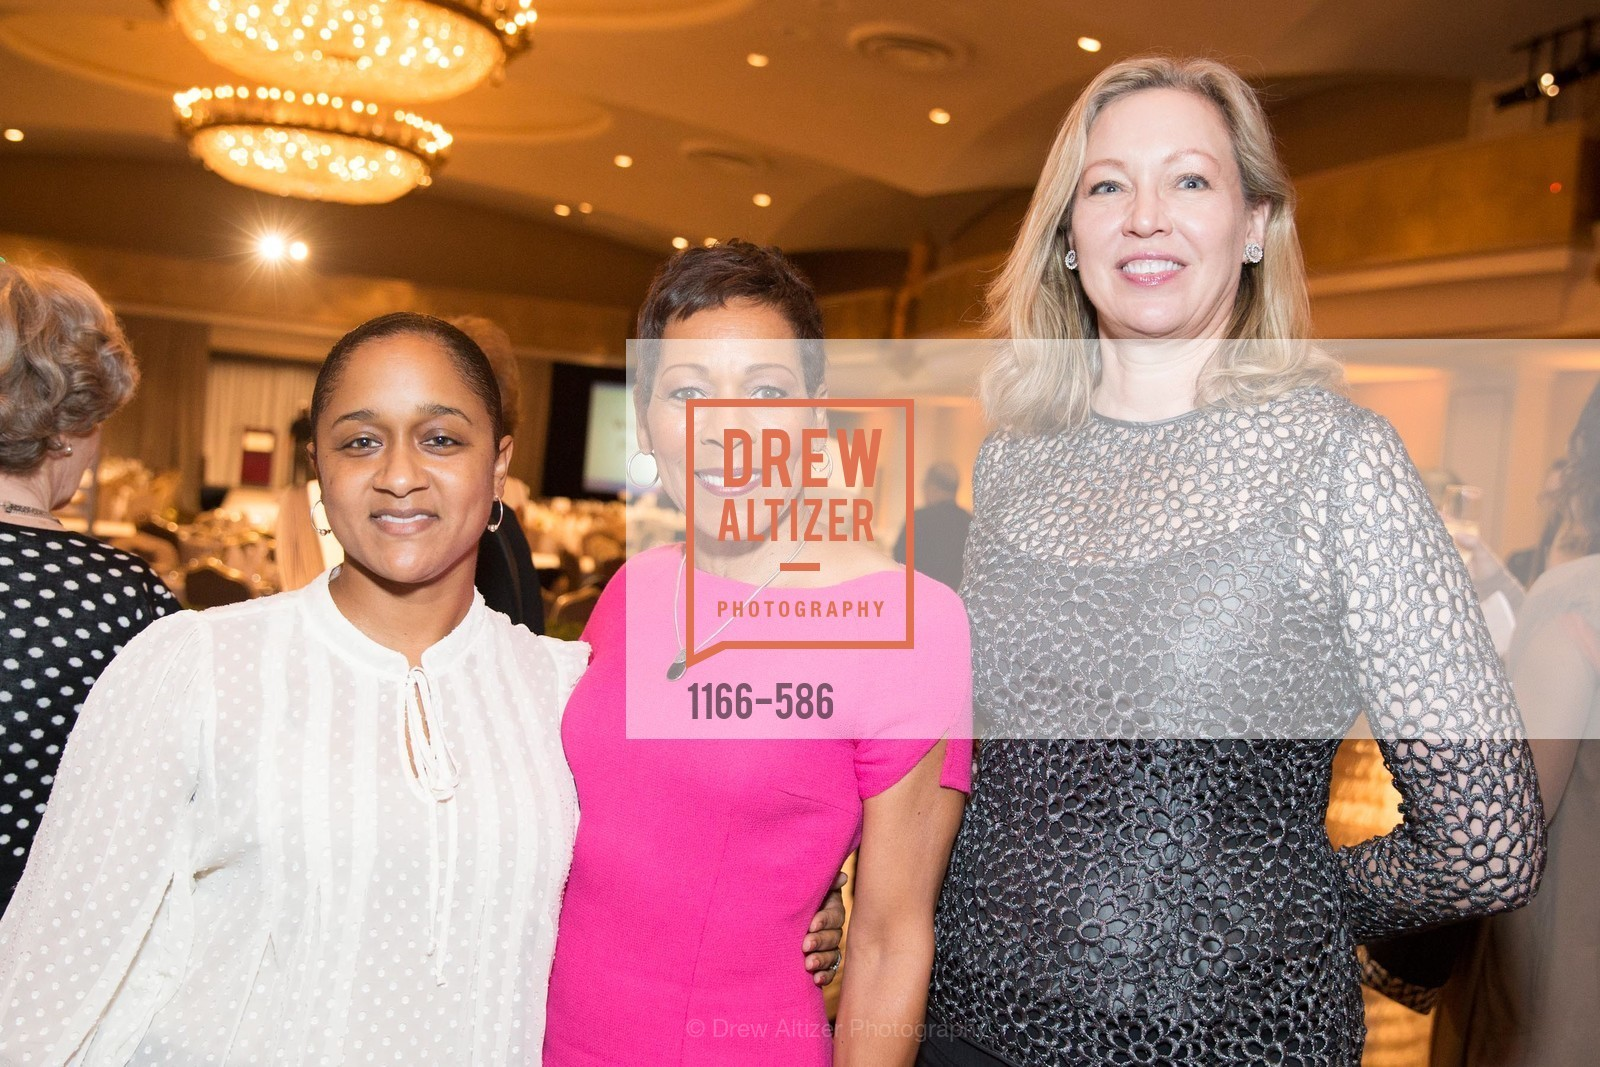 Ciara Coleman, Valerie Coleman Morris, Betsy Vobach, 2014 Bay Area ARTHRITIS AUXILLIARY Benefit & Fashion Show, US, October 1st, 2014,Drew Altizer, Drew Altizer Photography, full-service agency, private events, San Francisco photographer, photographer california